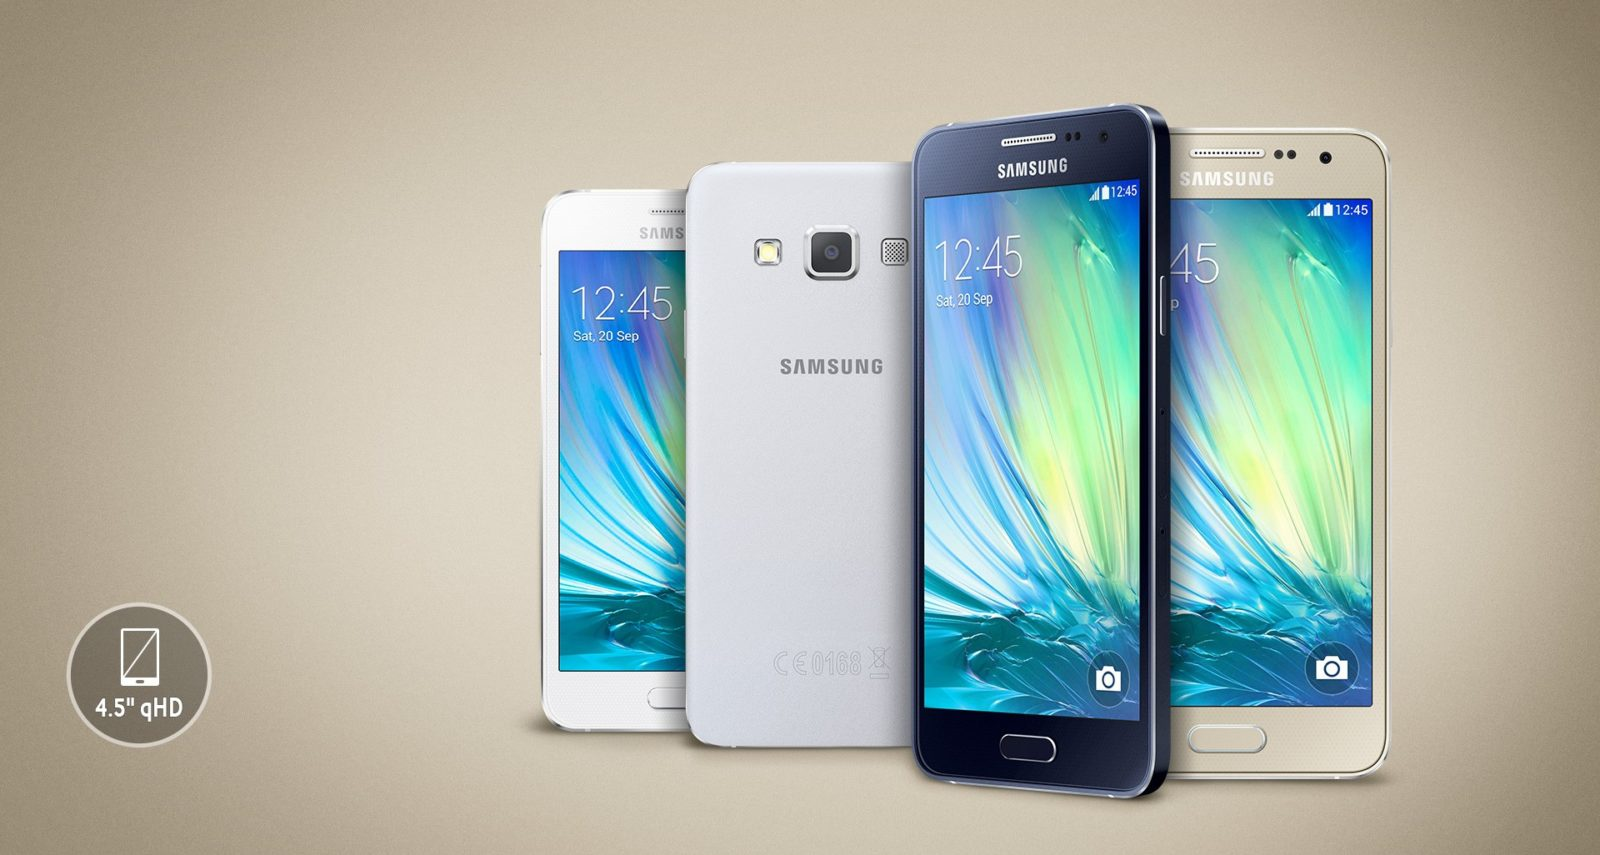 Samsung Galaxy A to Receive 16MP Cameras, MicroSD Slots Updates